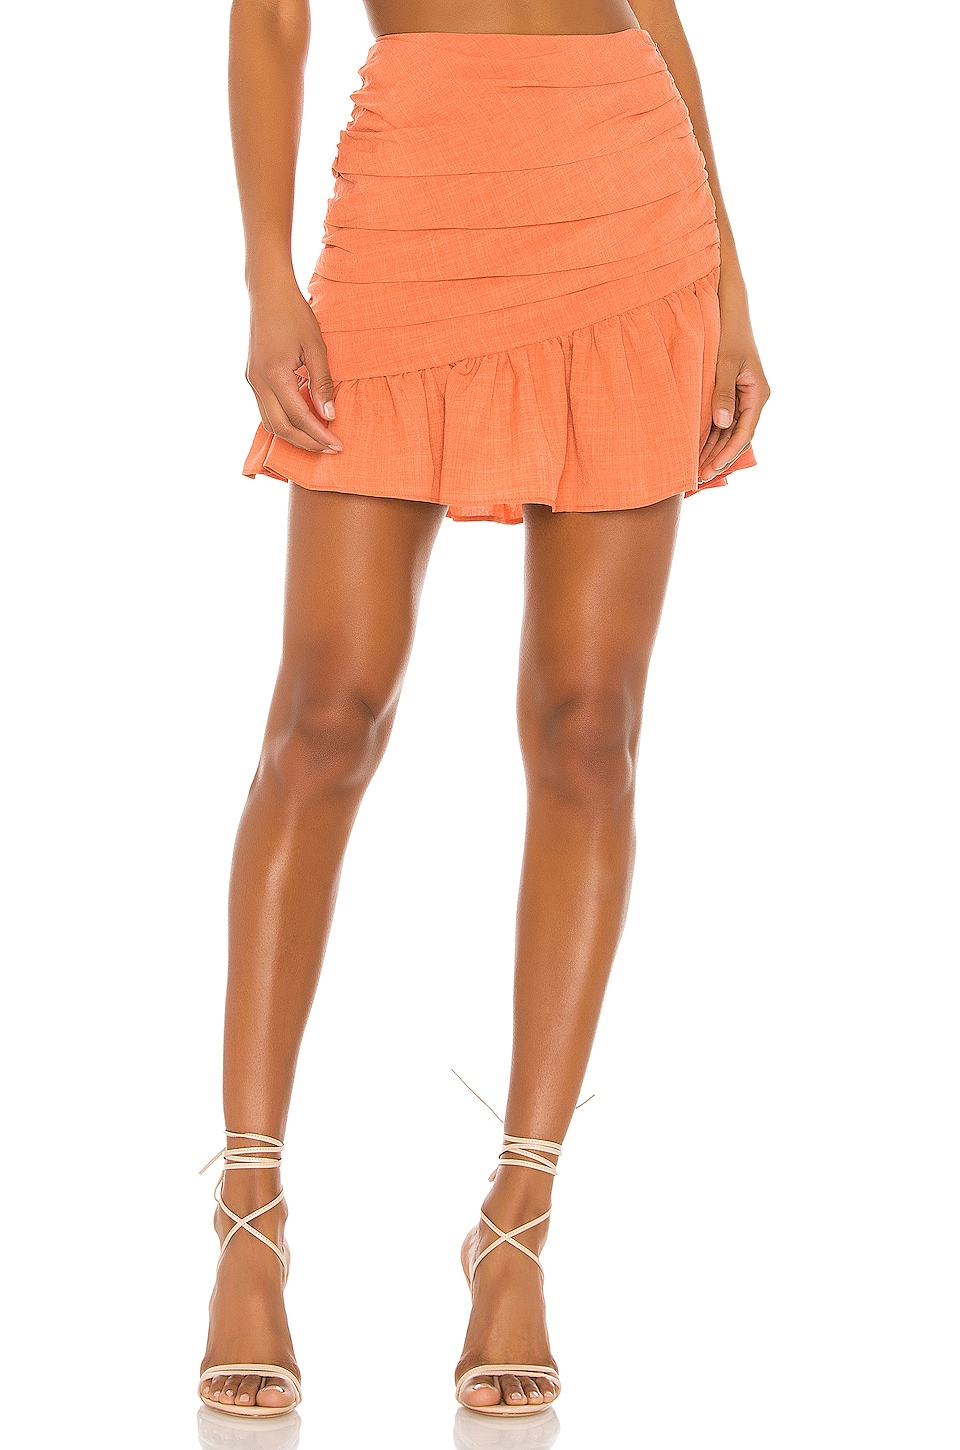 Atoir Outside Today Skirt in Sunset Orange